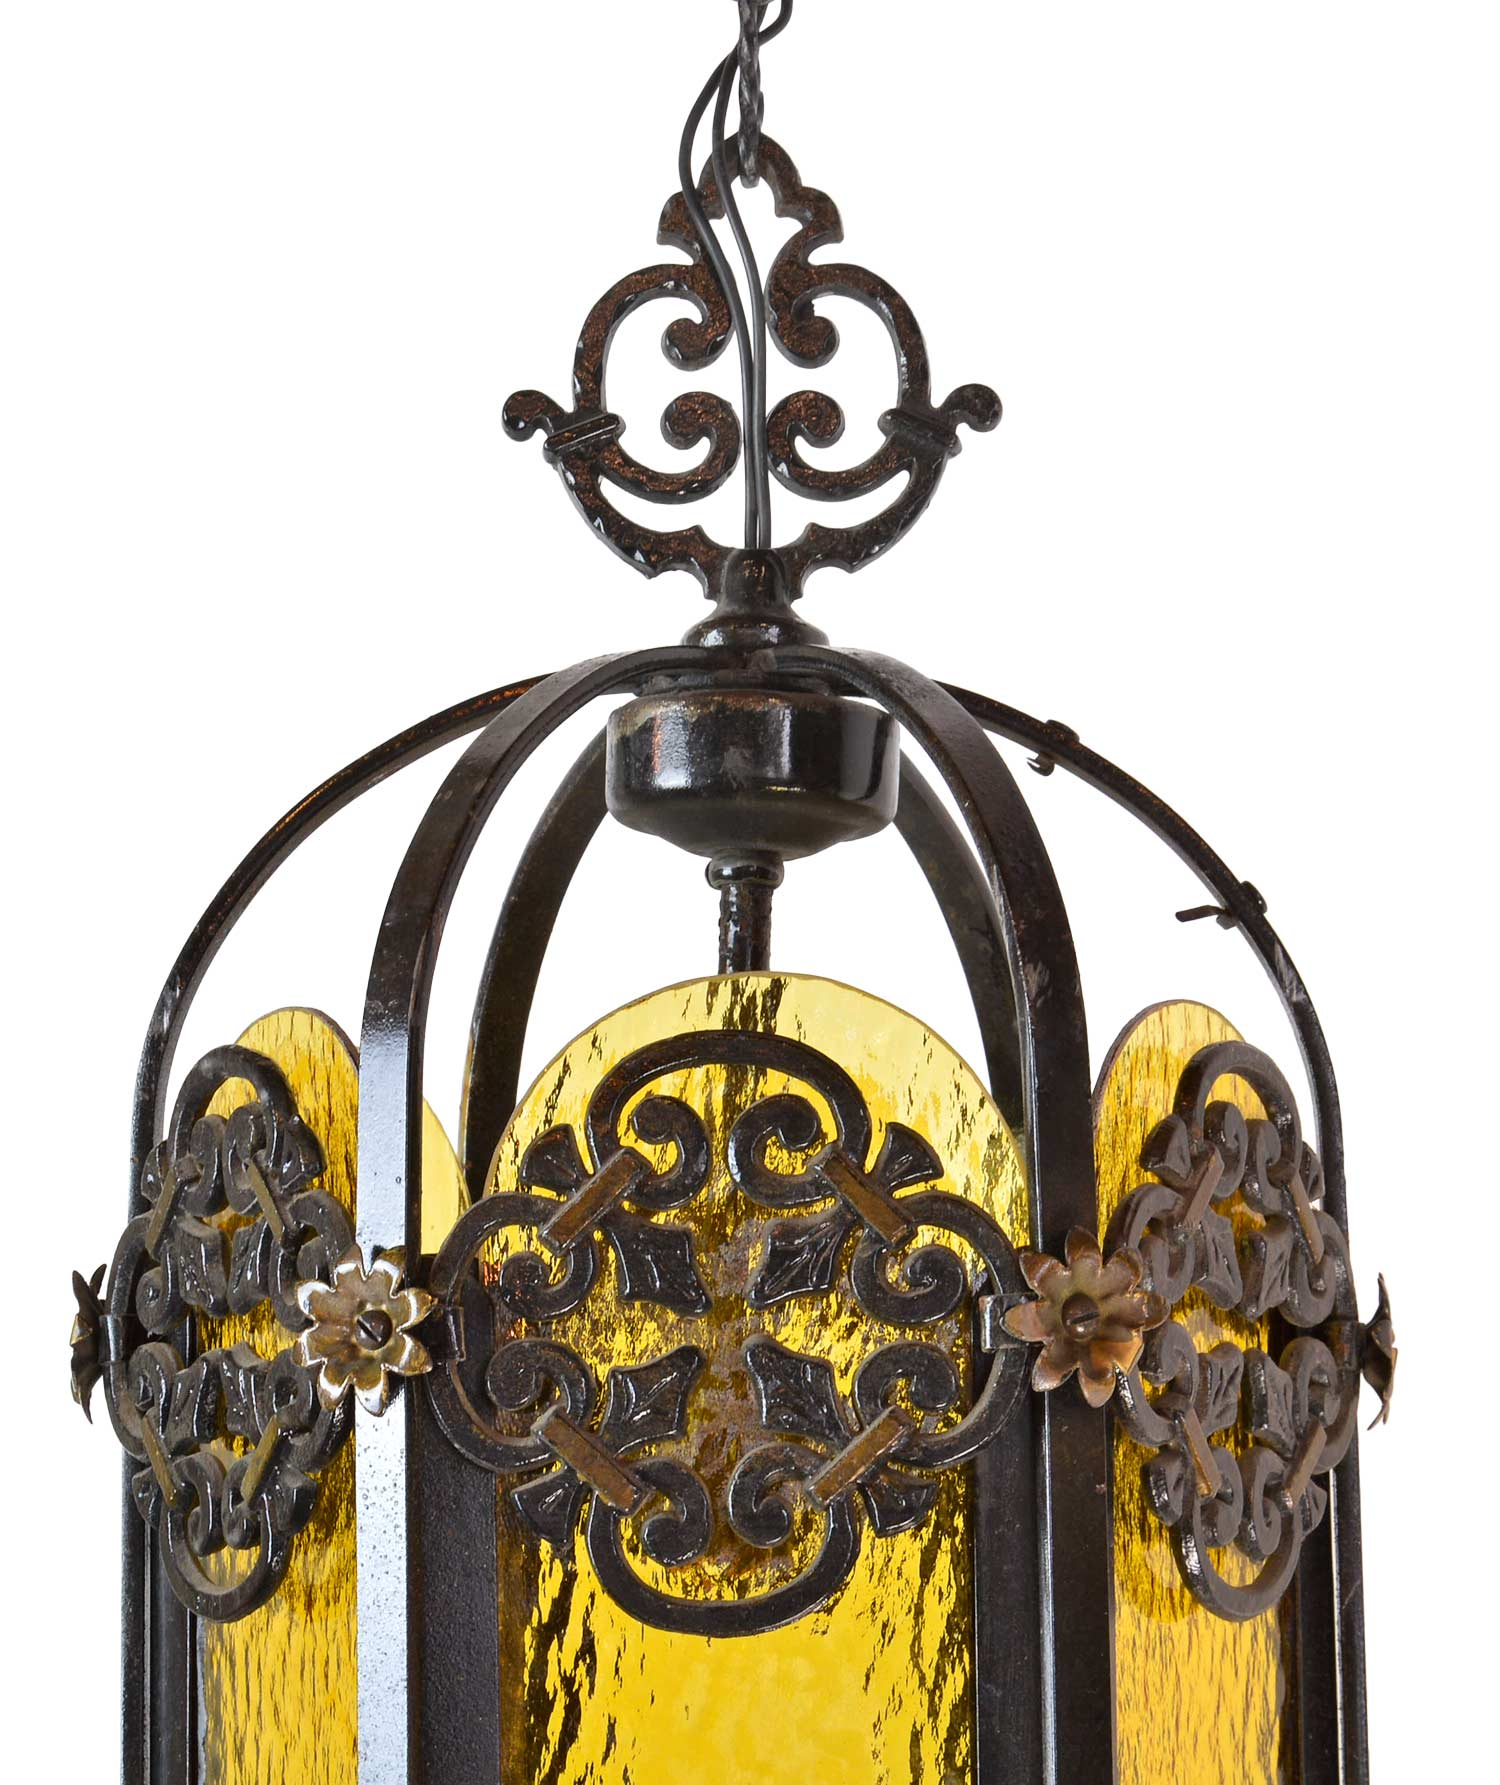 45961-bent-amber-glass-and-iron-chandelier-with-floral-details-top.jpg